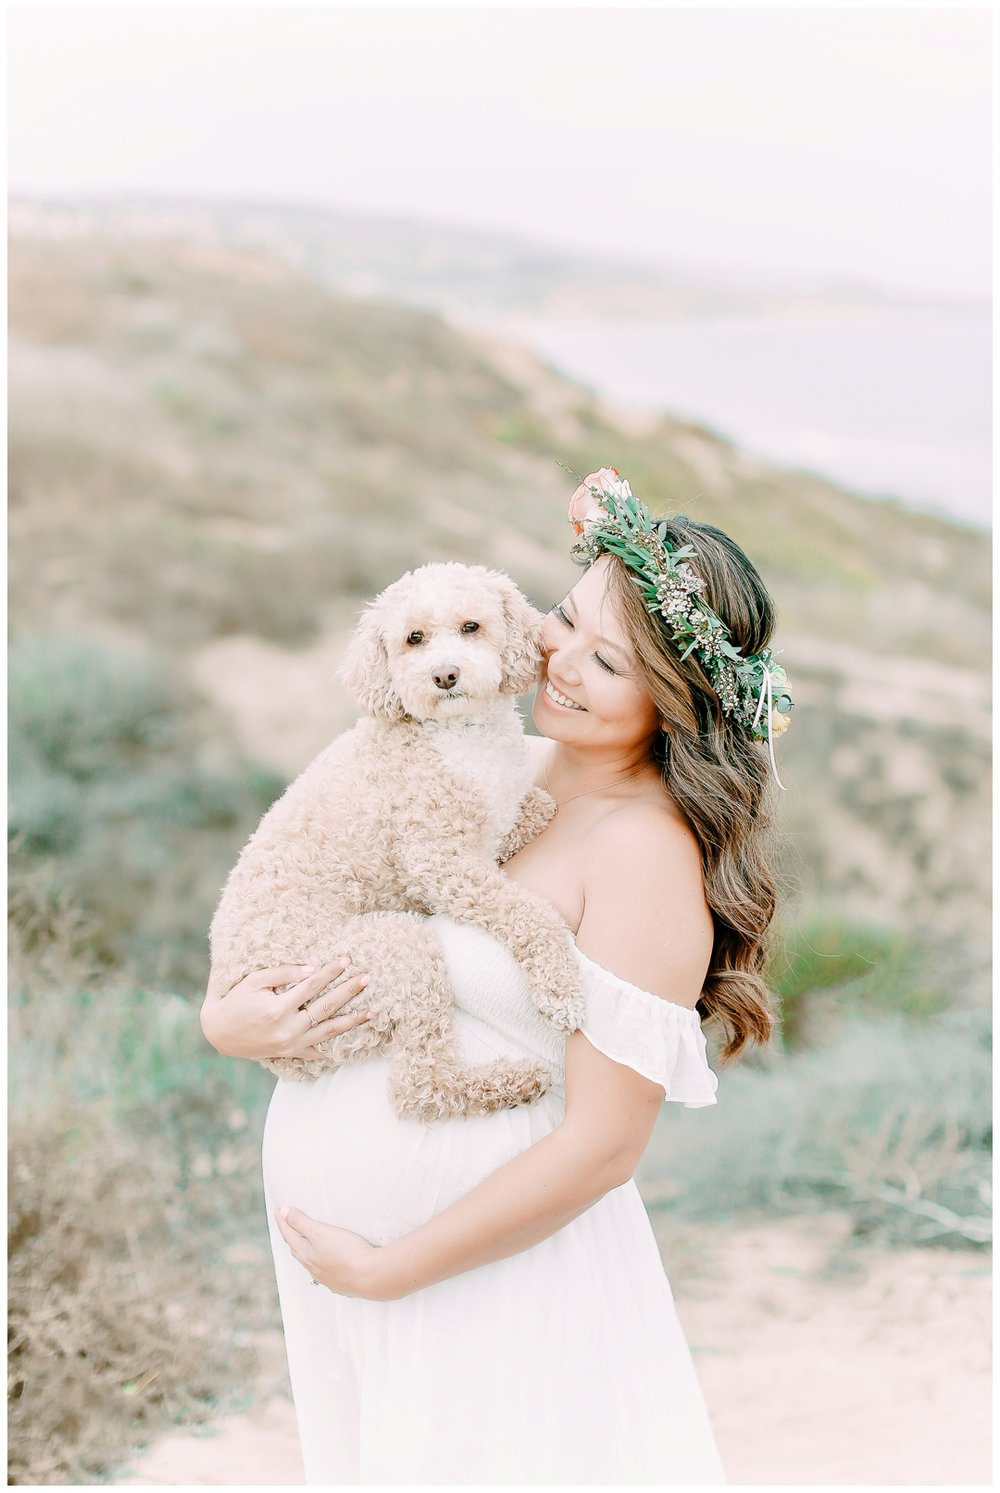 Newport_Beach_Maternity_Photographer_Orange_County_Maternity_Photography_Cori_Kleckner_Photography_Orange_County_Family_Photographer_Beach_Maternity_Session_1133.jpg